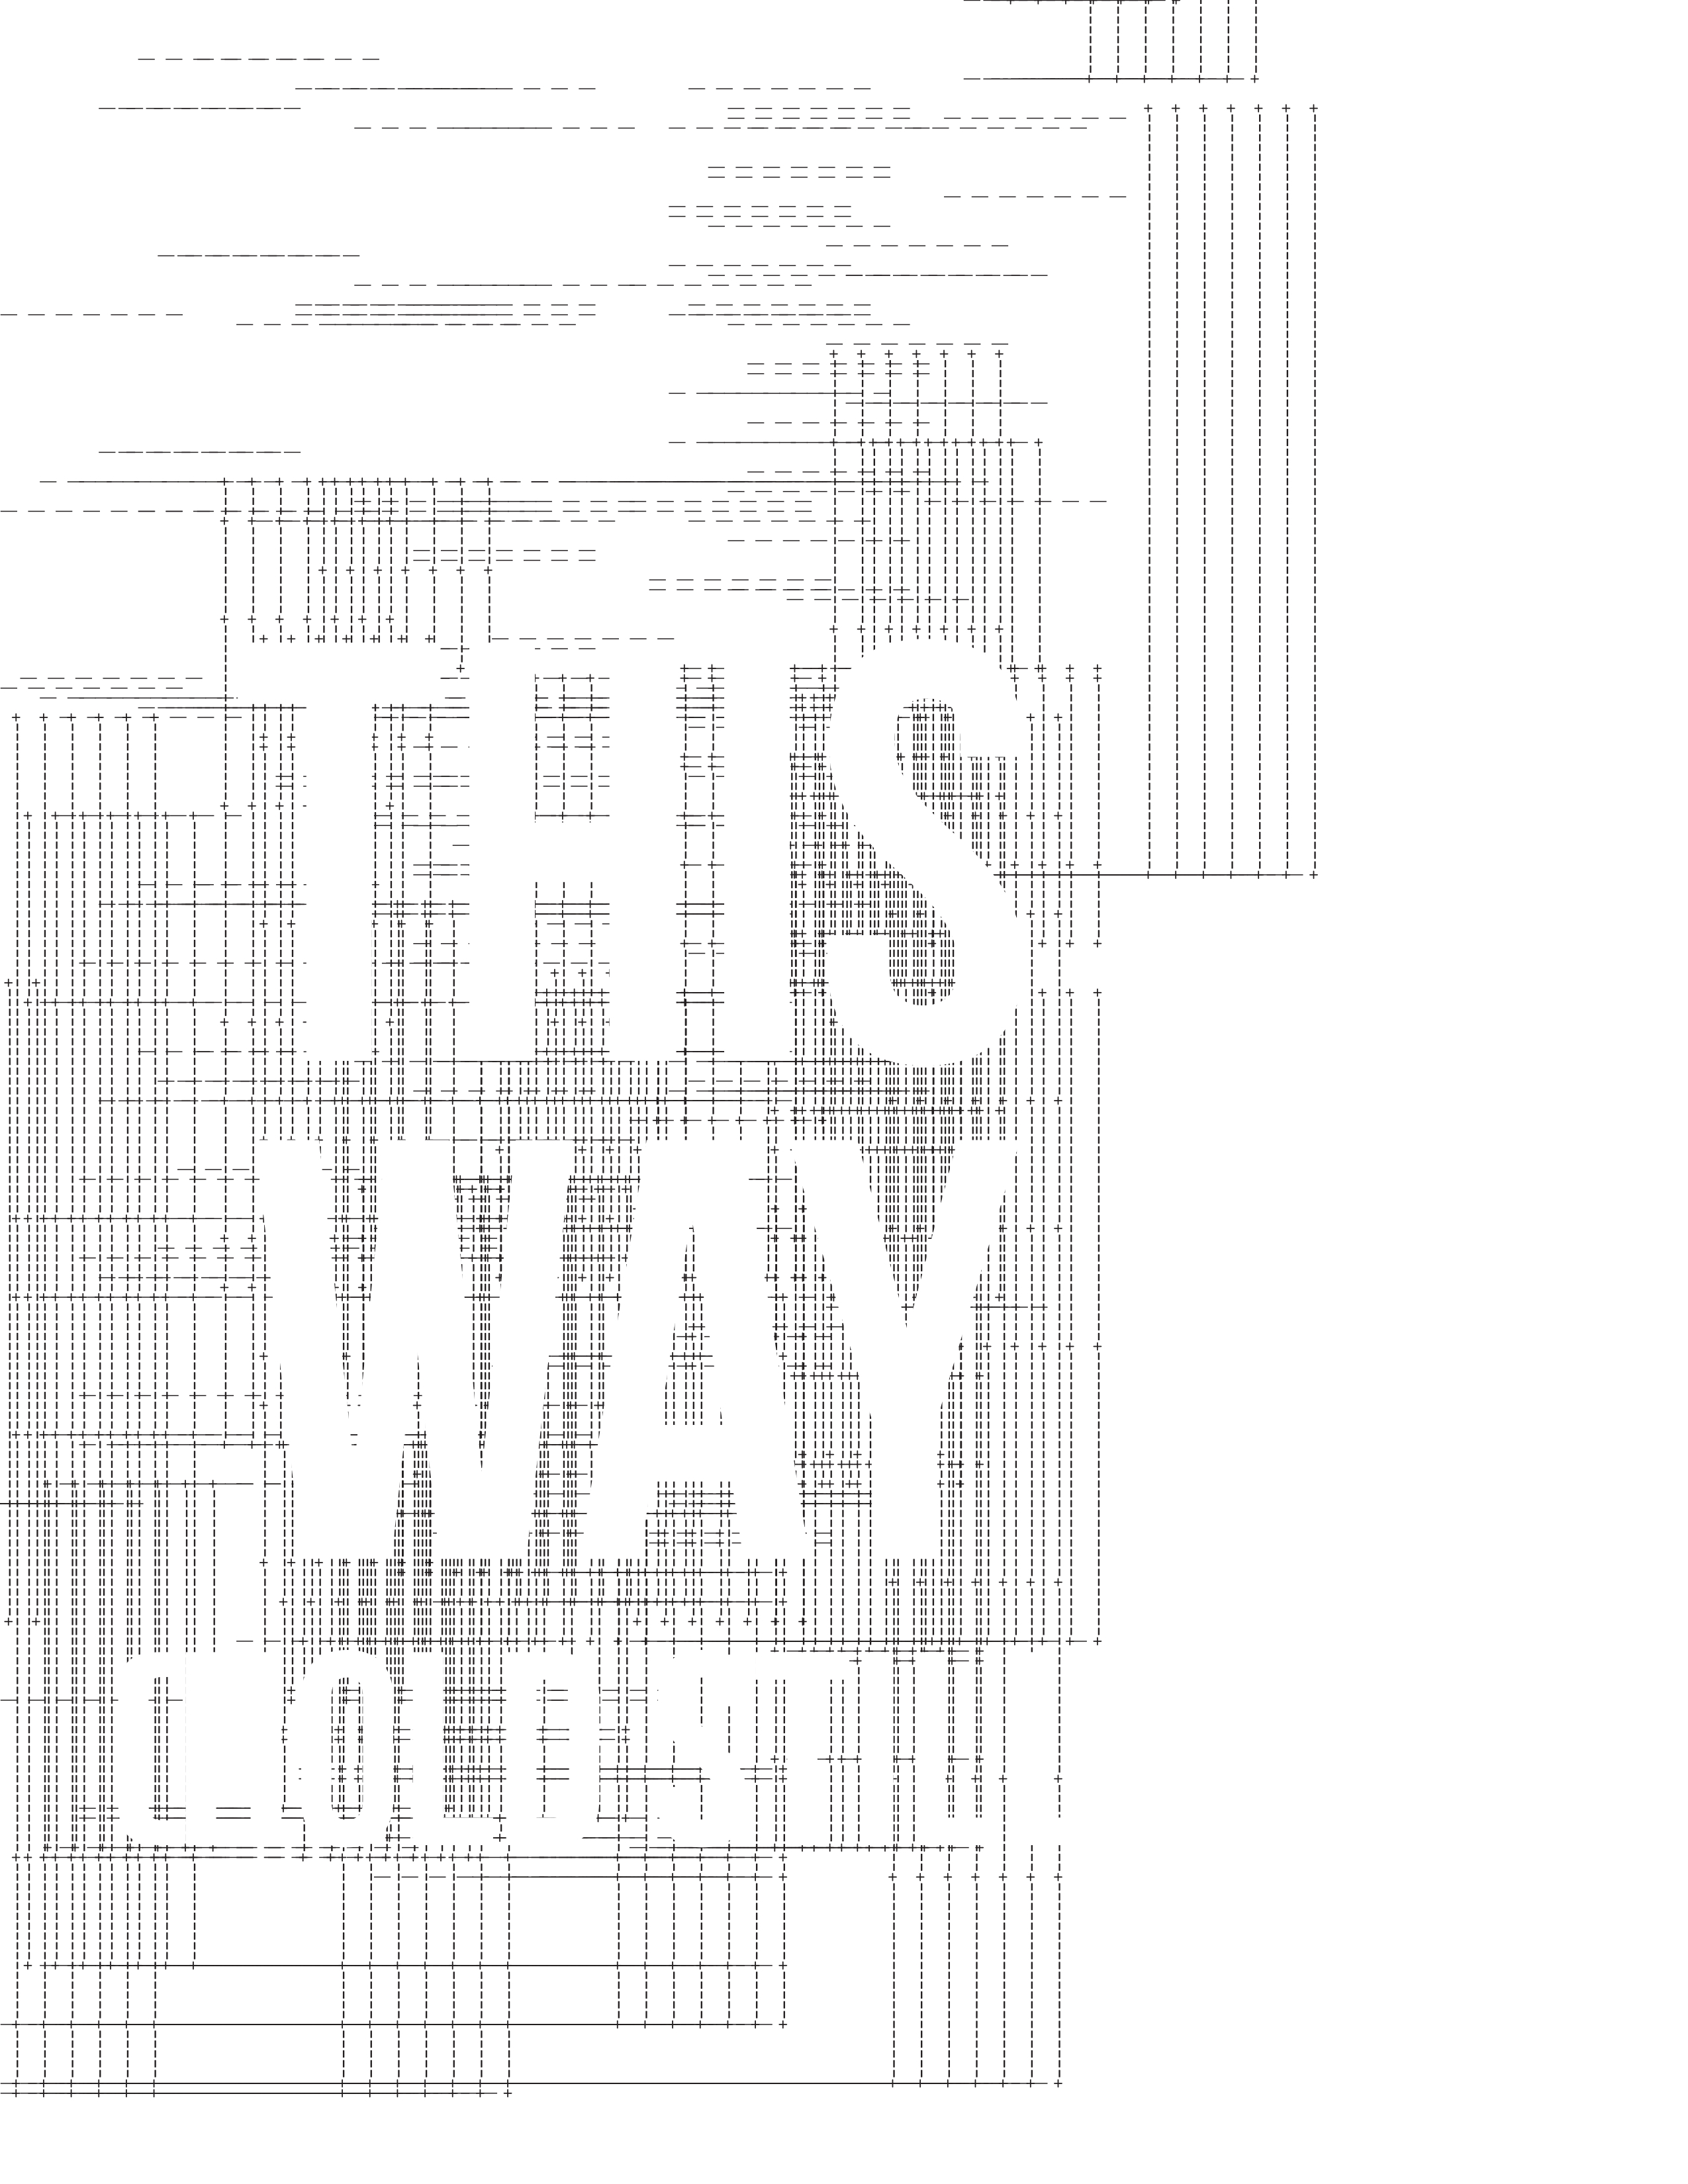 thisway_poster.jpg